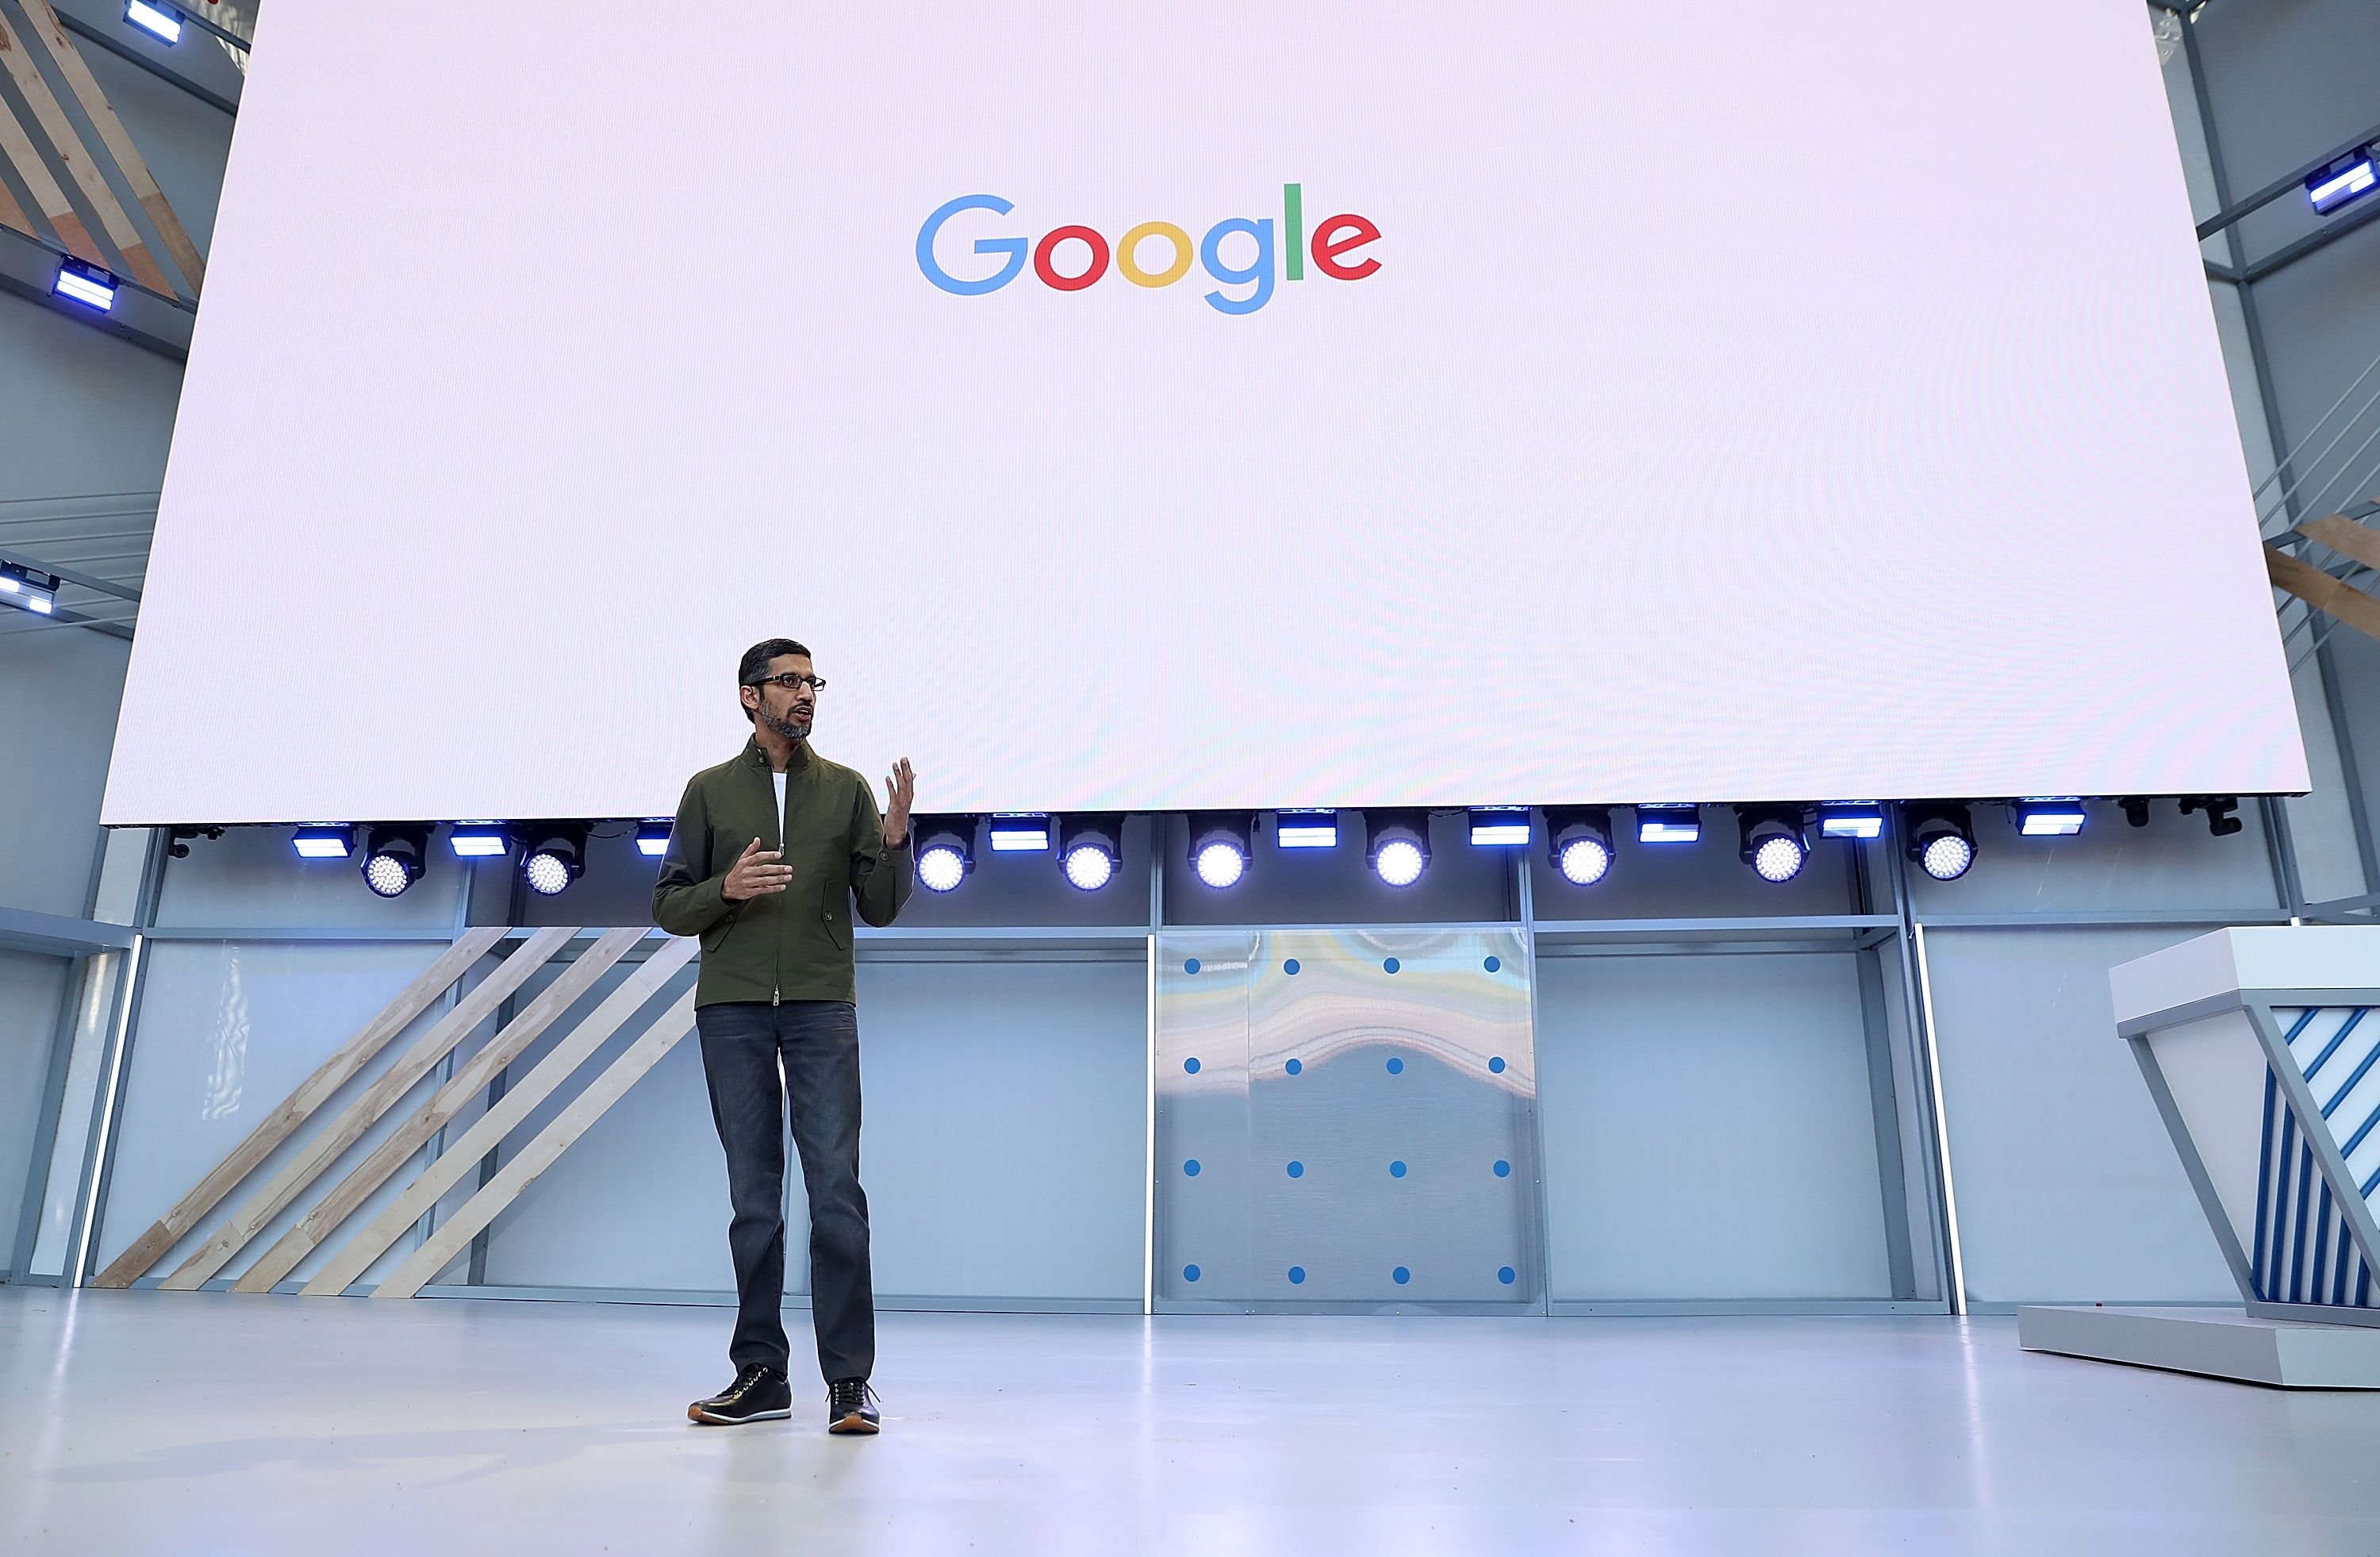 Here's How to Watch Google's 2019 I/O Developer Conference Live